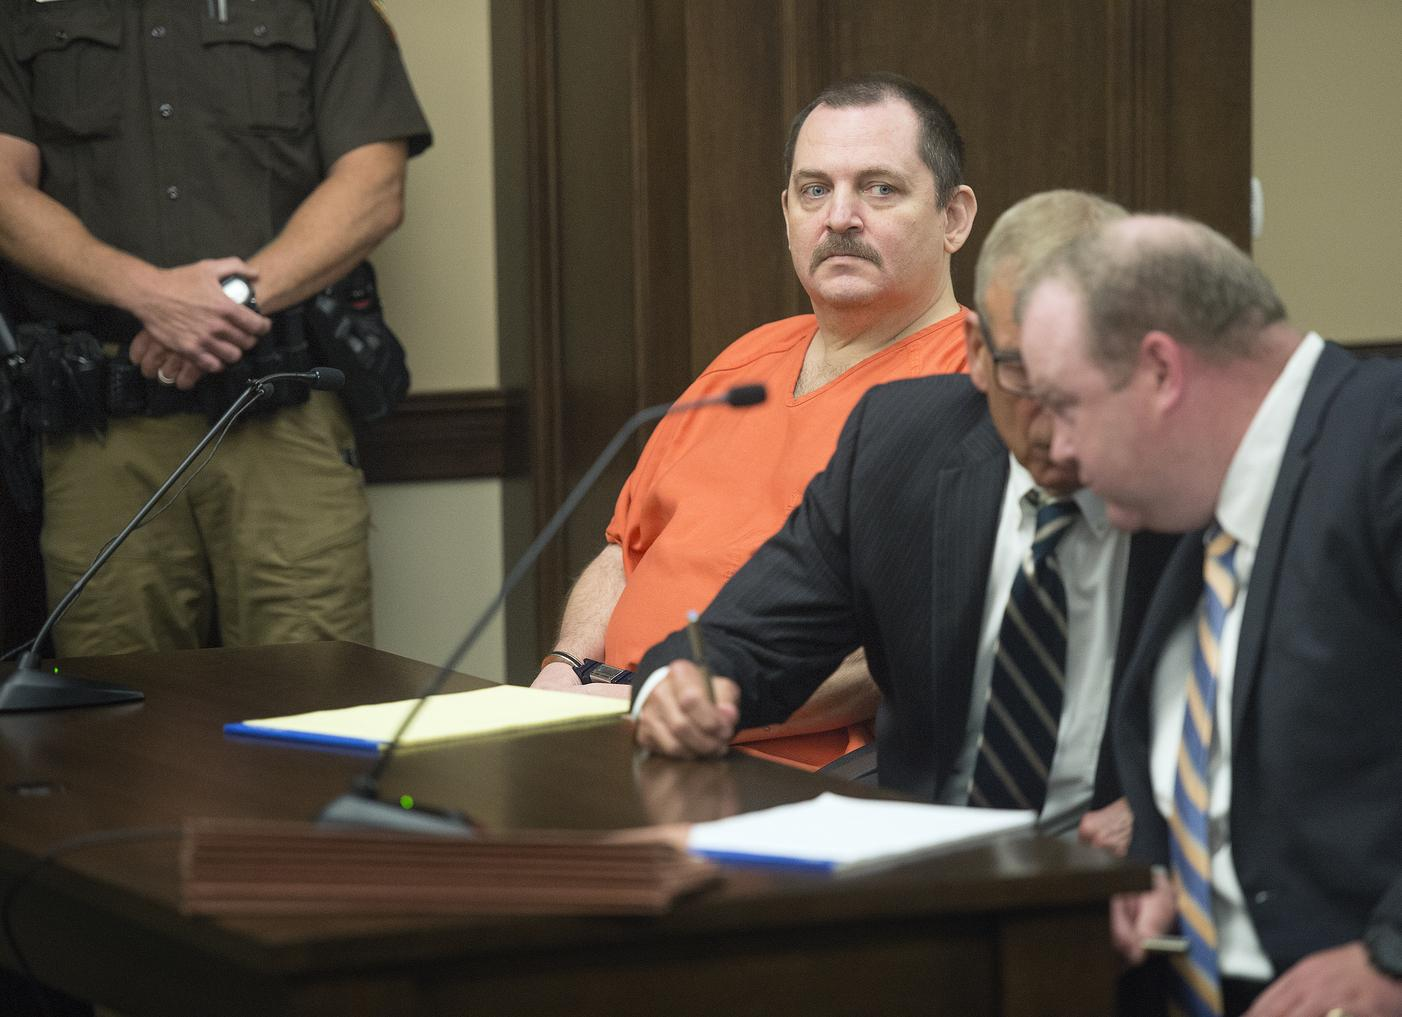 Nebraska - latest news, breaking stories and comment - The